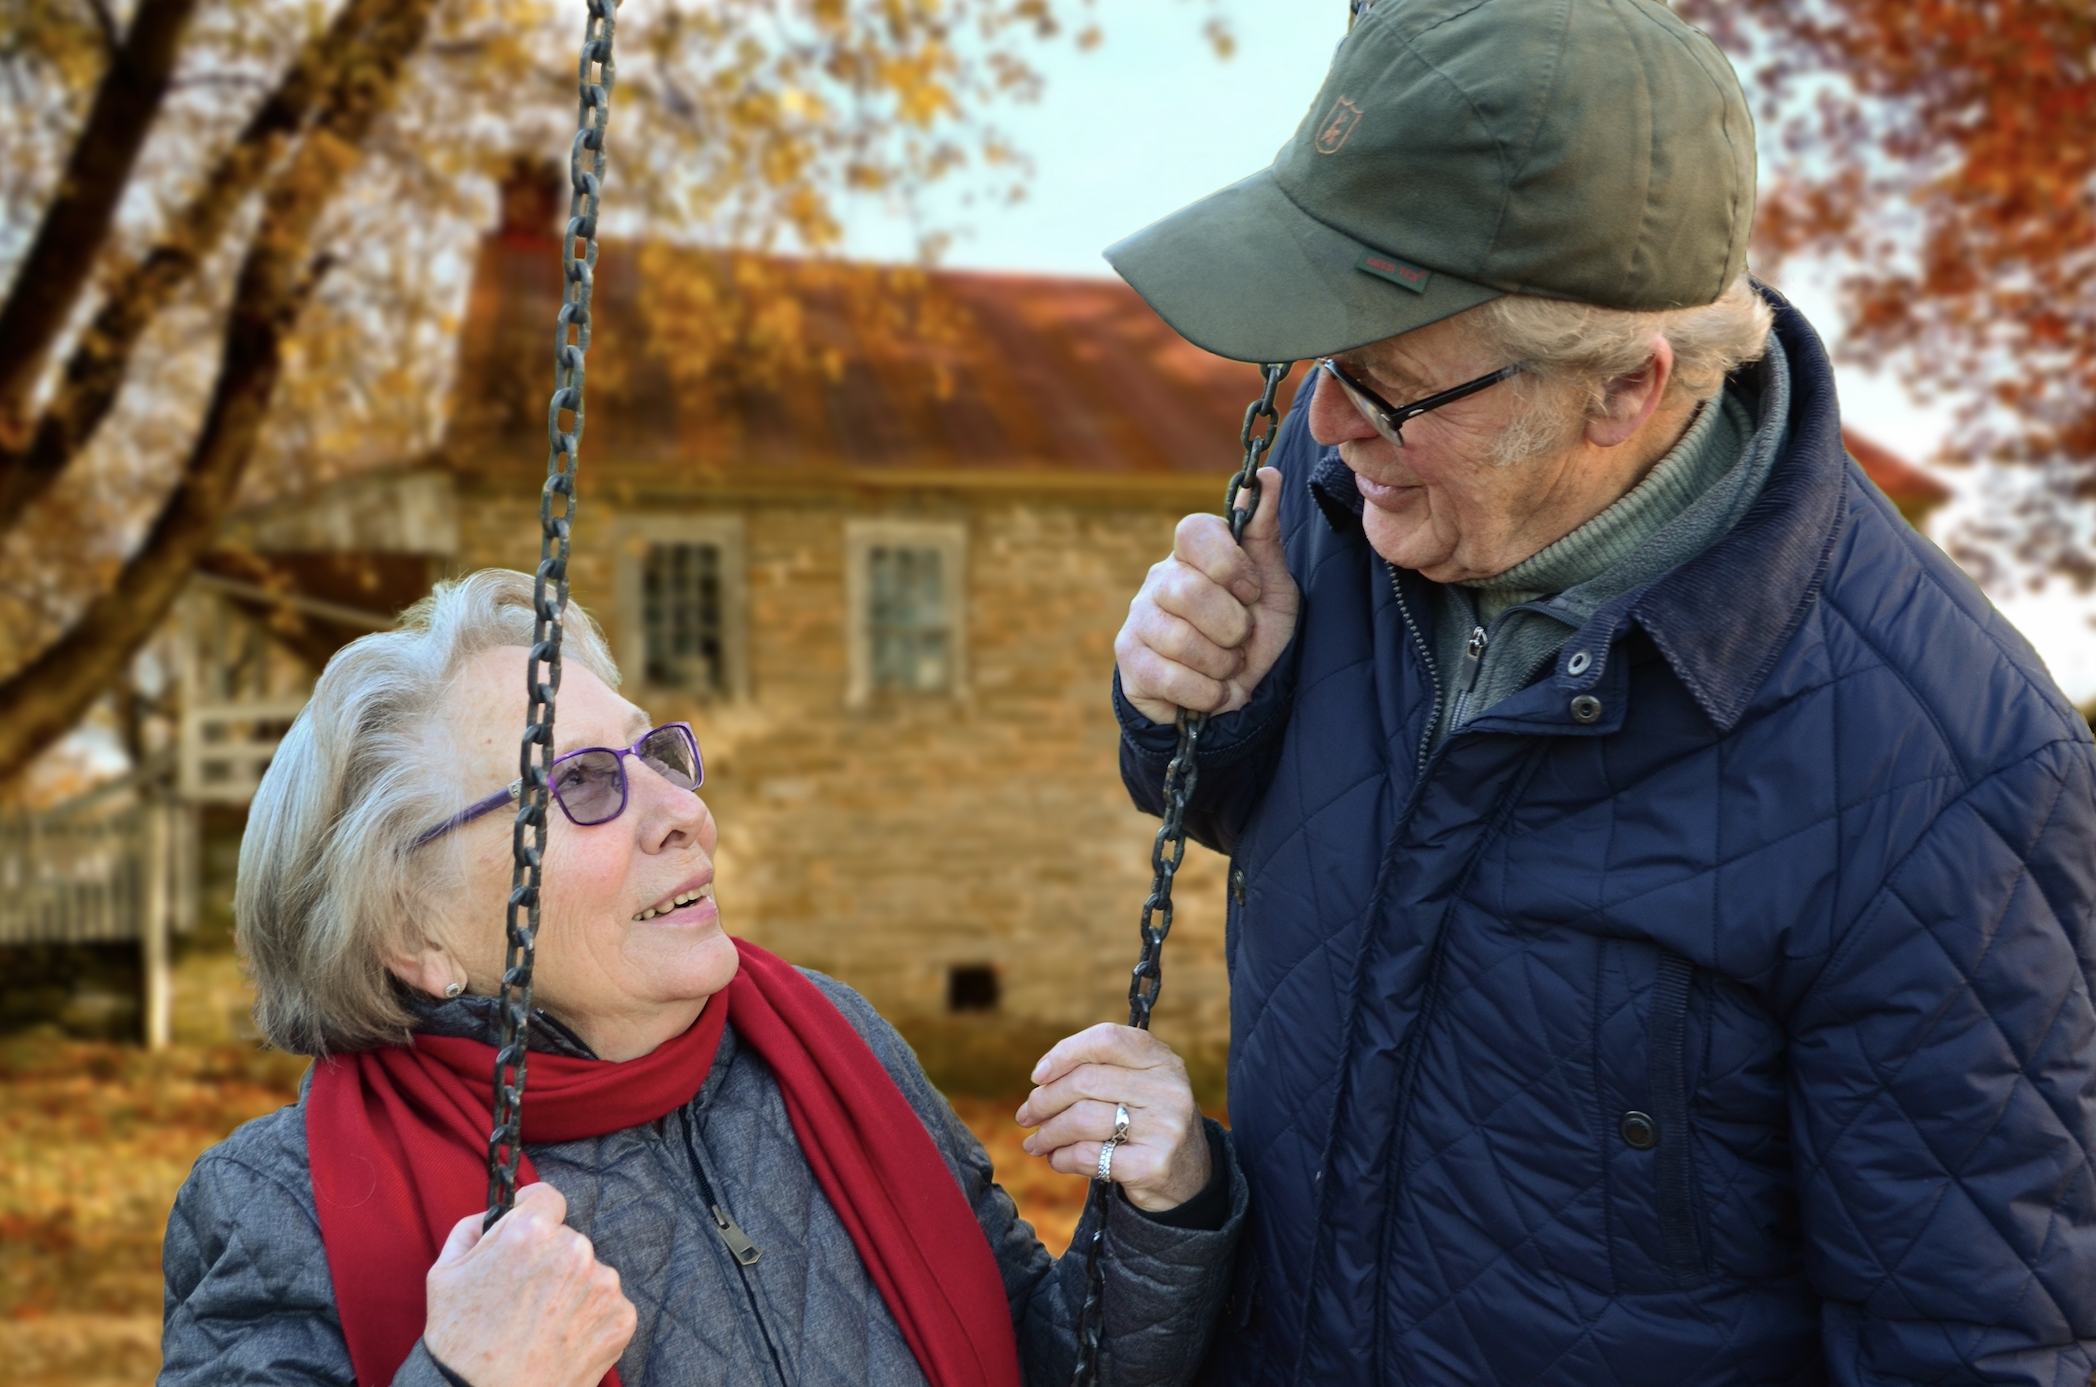 elderly couple looking at each other and smiling on a swing set